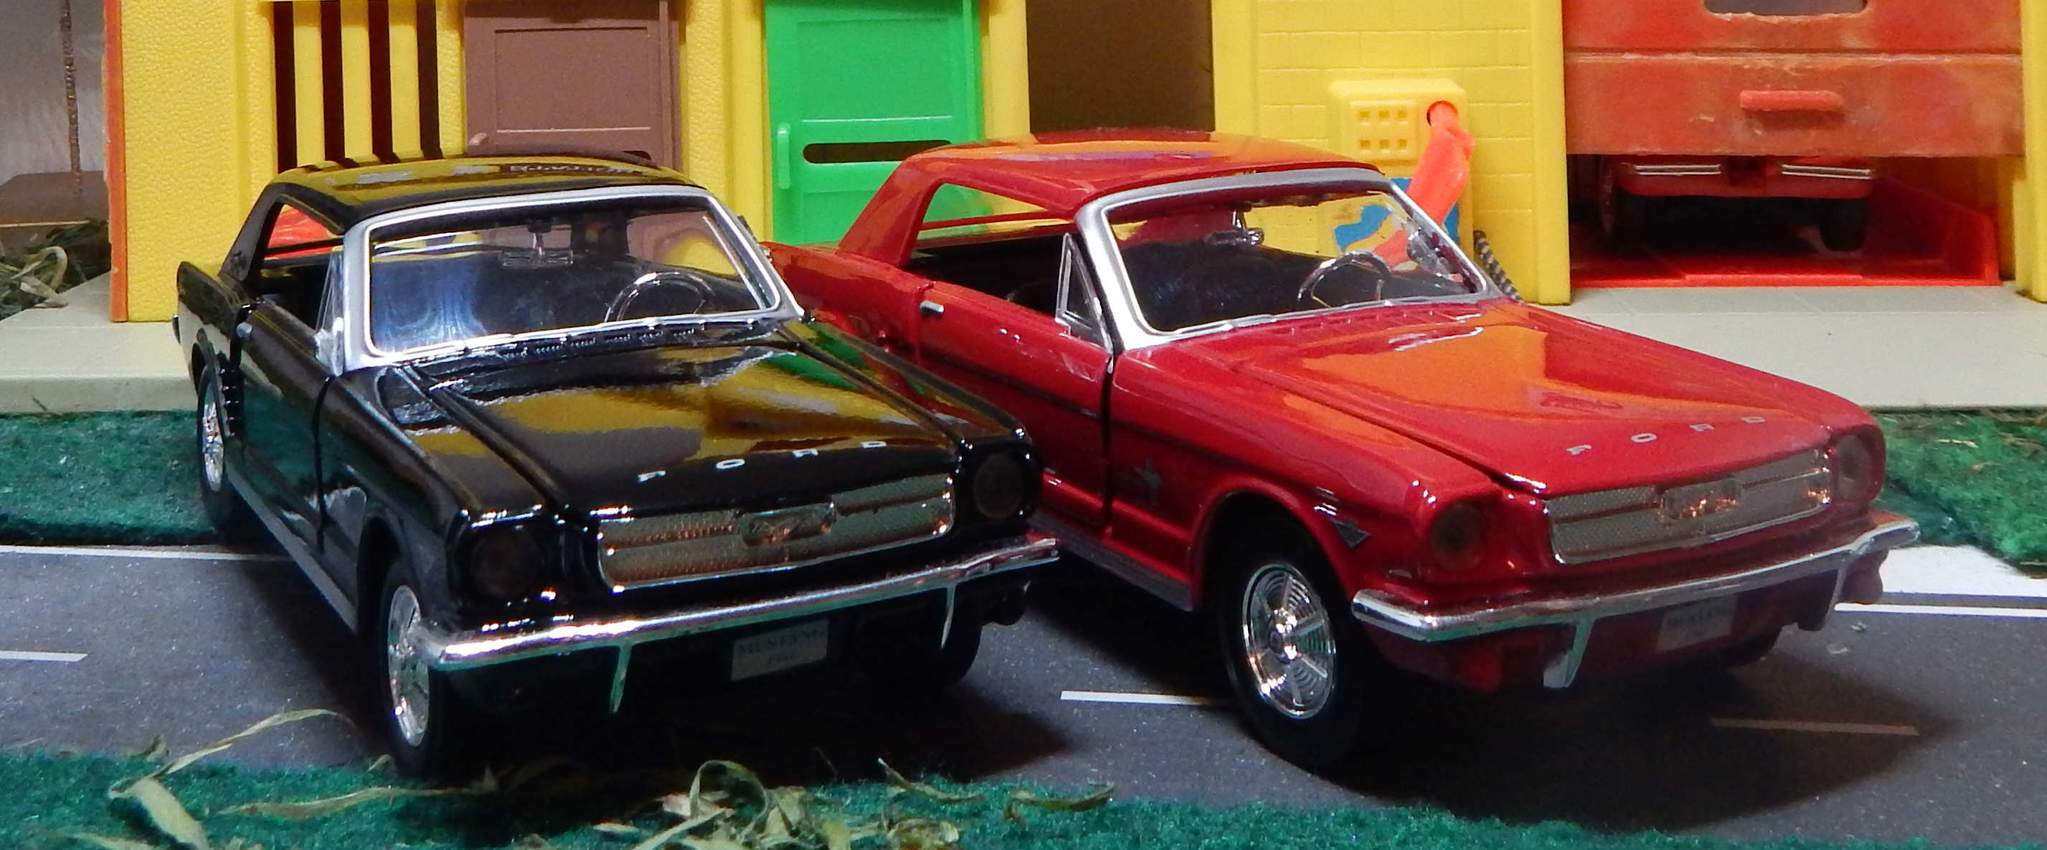 1964 1/2 Mustang Hard Top/Convertible 1/24 Scale.